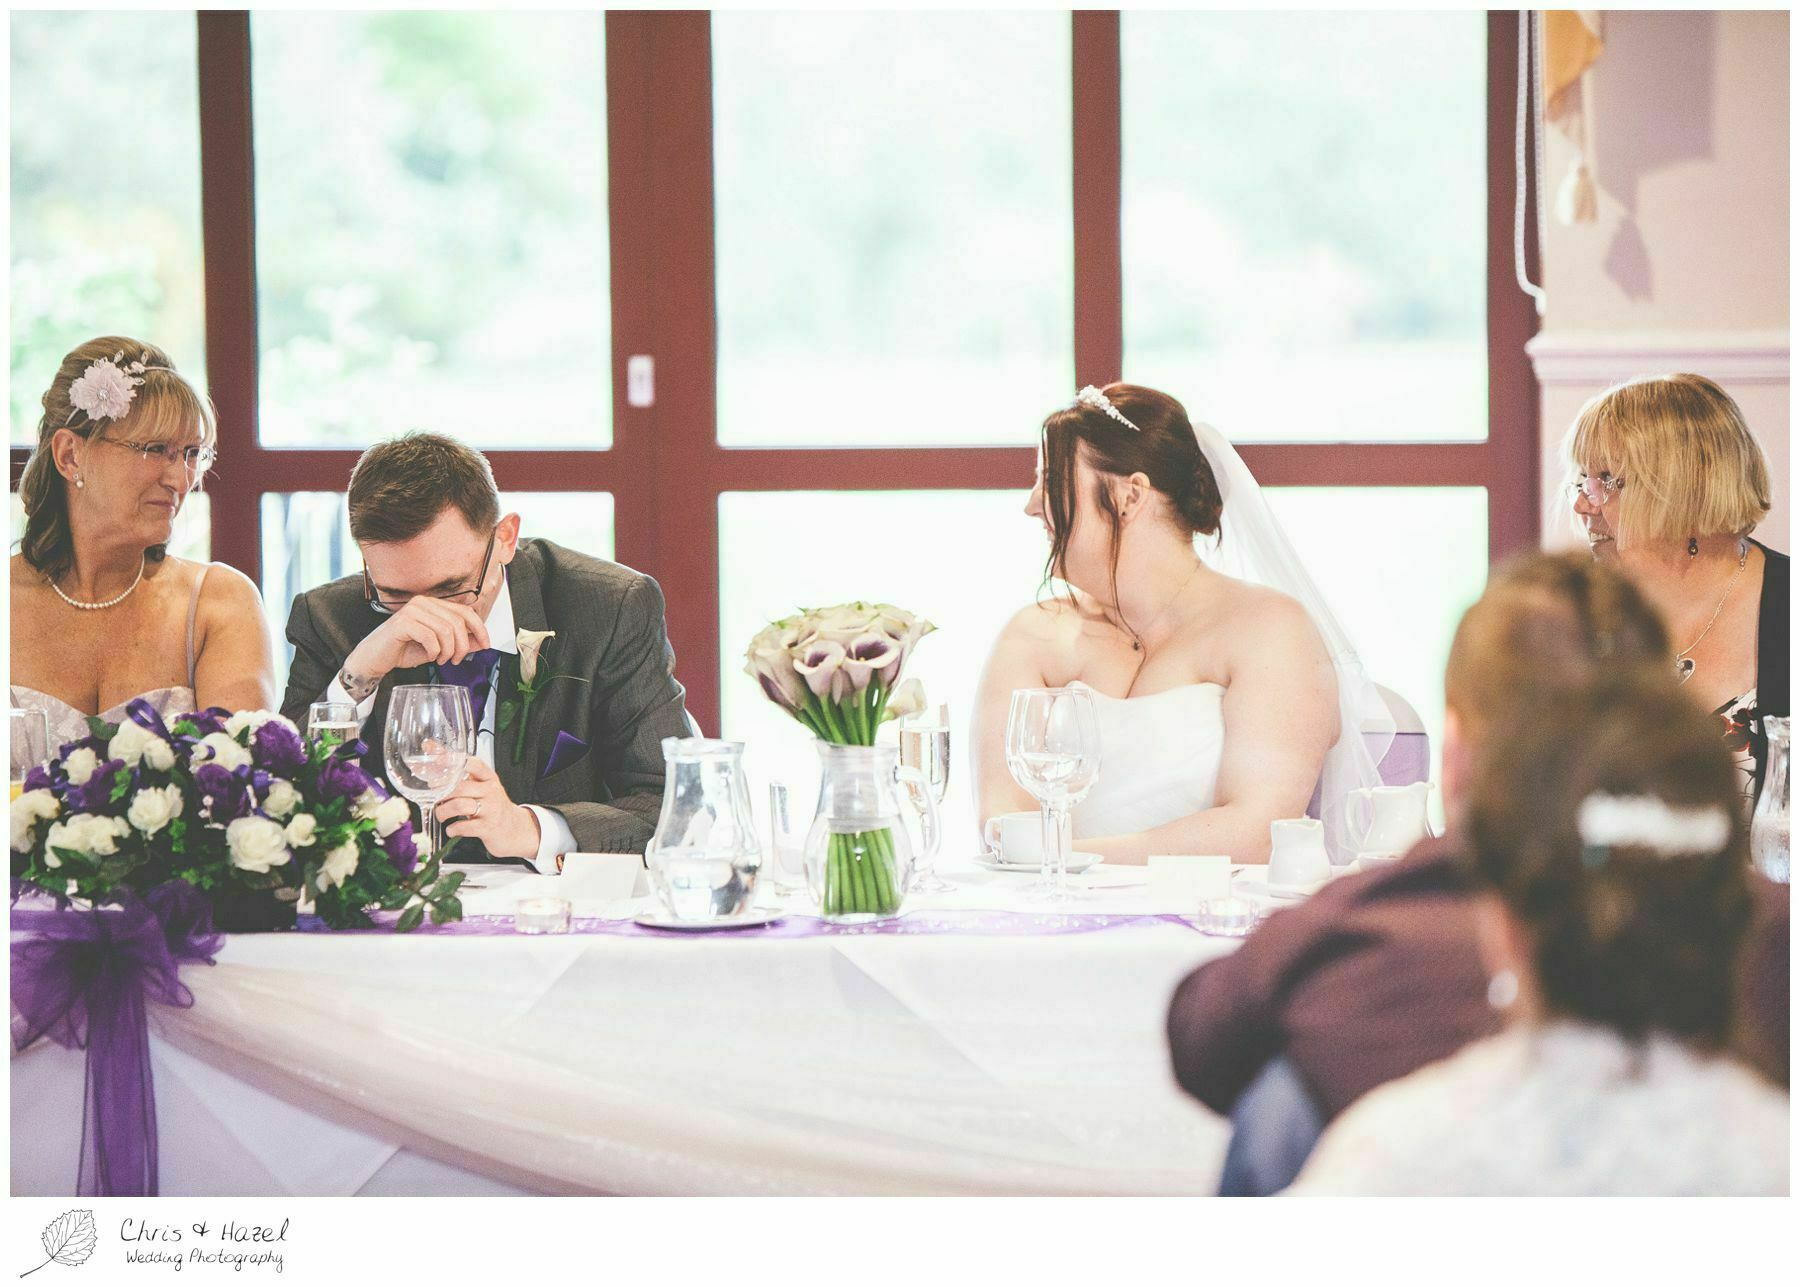 wedding speech reaction, bagden hall wedding venue, documentary wedding photography, denny dale, huddersfield, Wedding Photographer, Bagden Hall, Wedding Photography, Chris and Hazel Wedding Photography, Alex tomenson, Vicky hunt